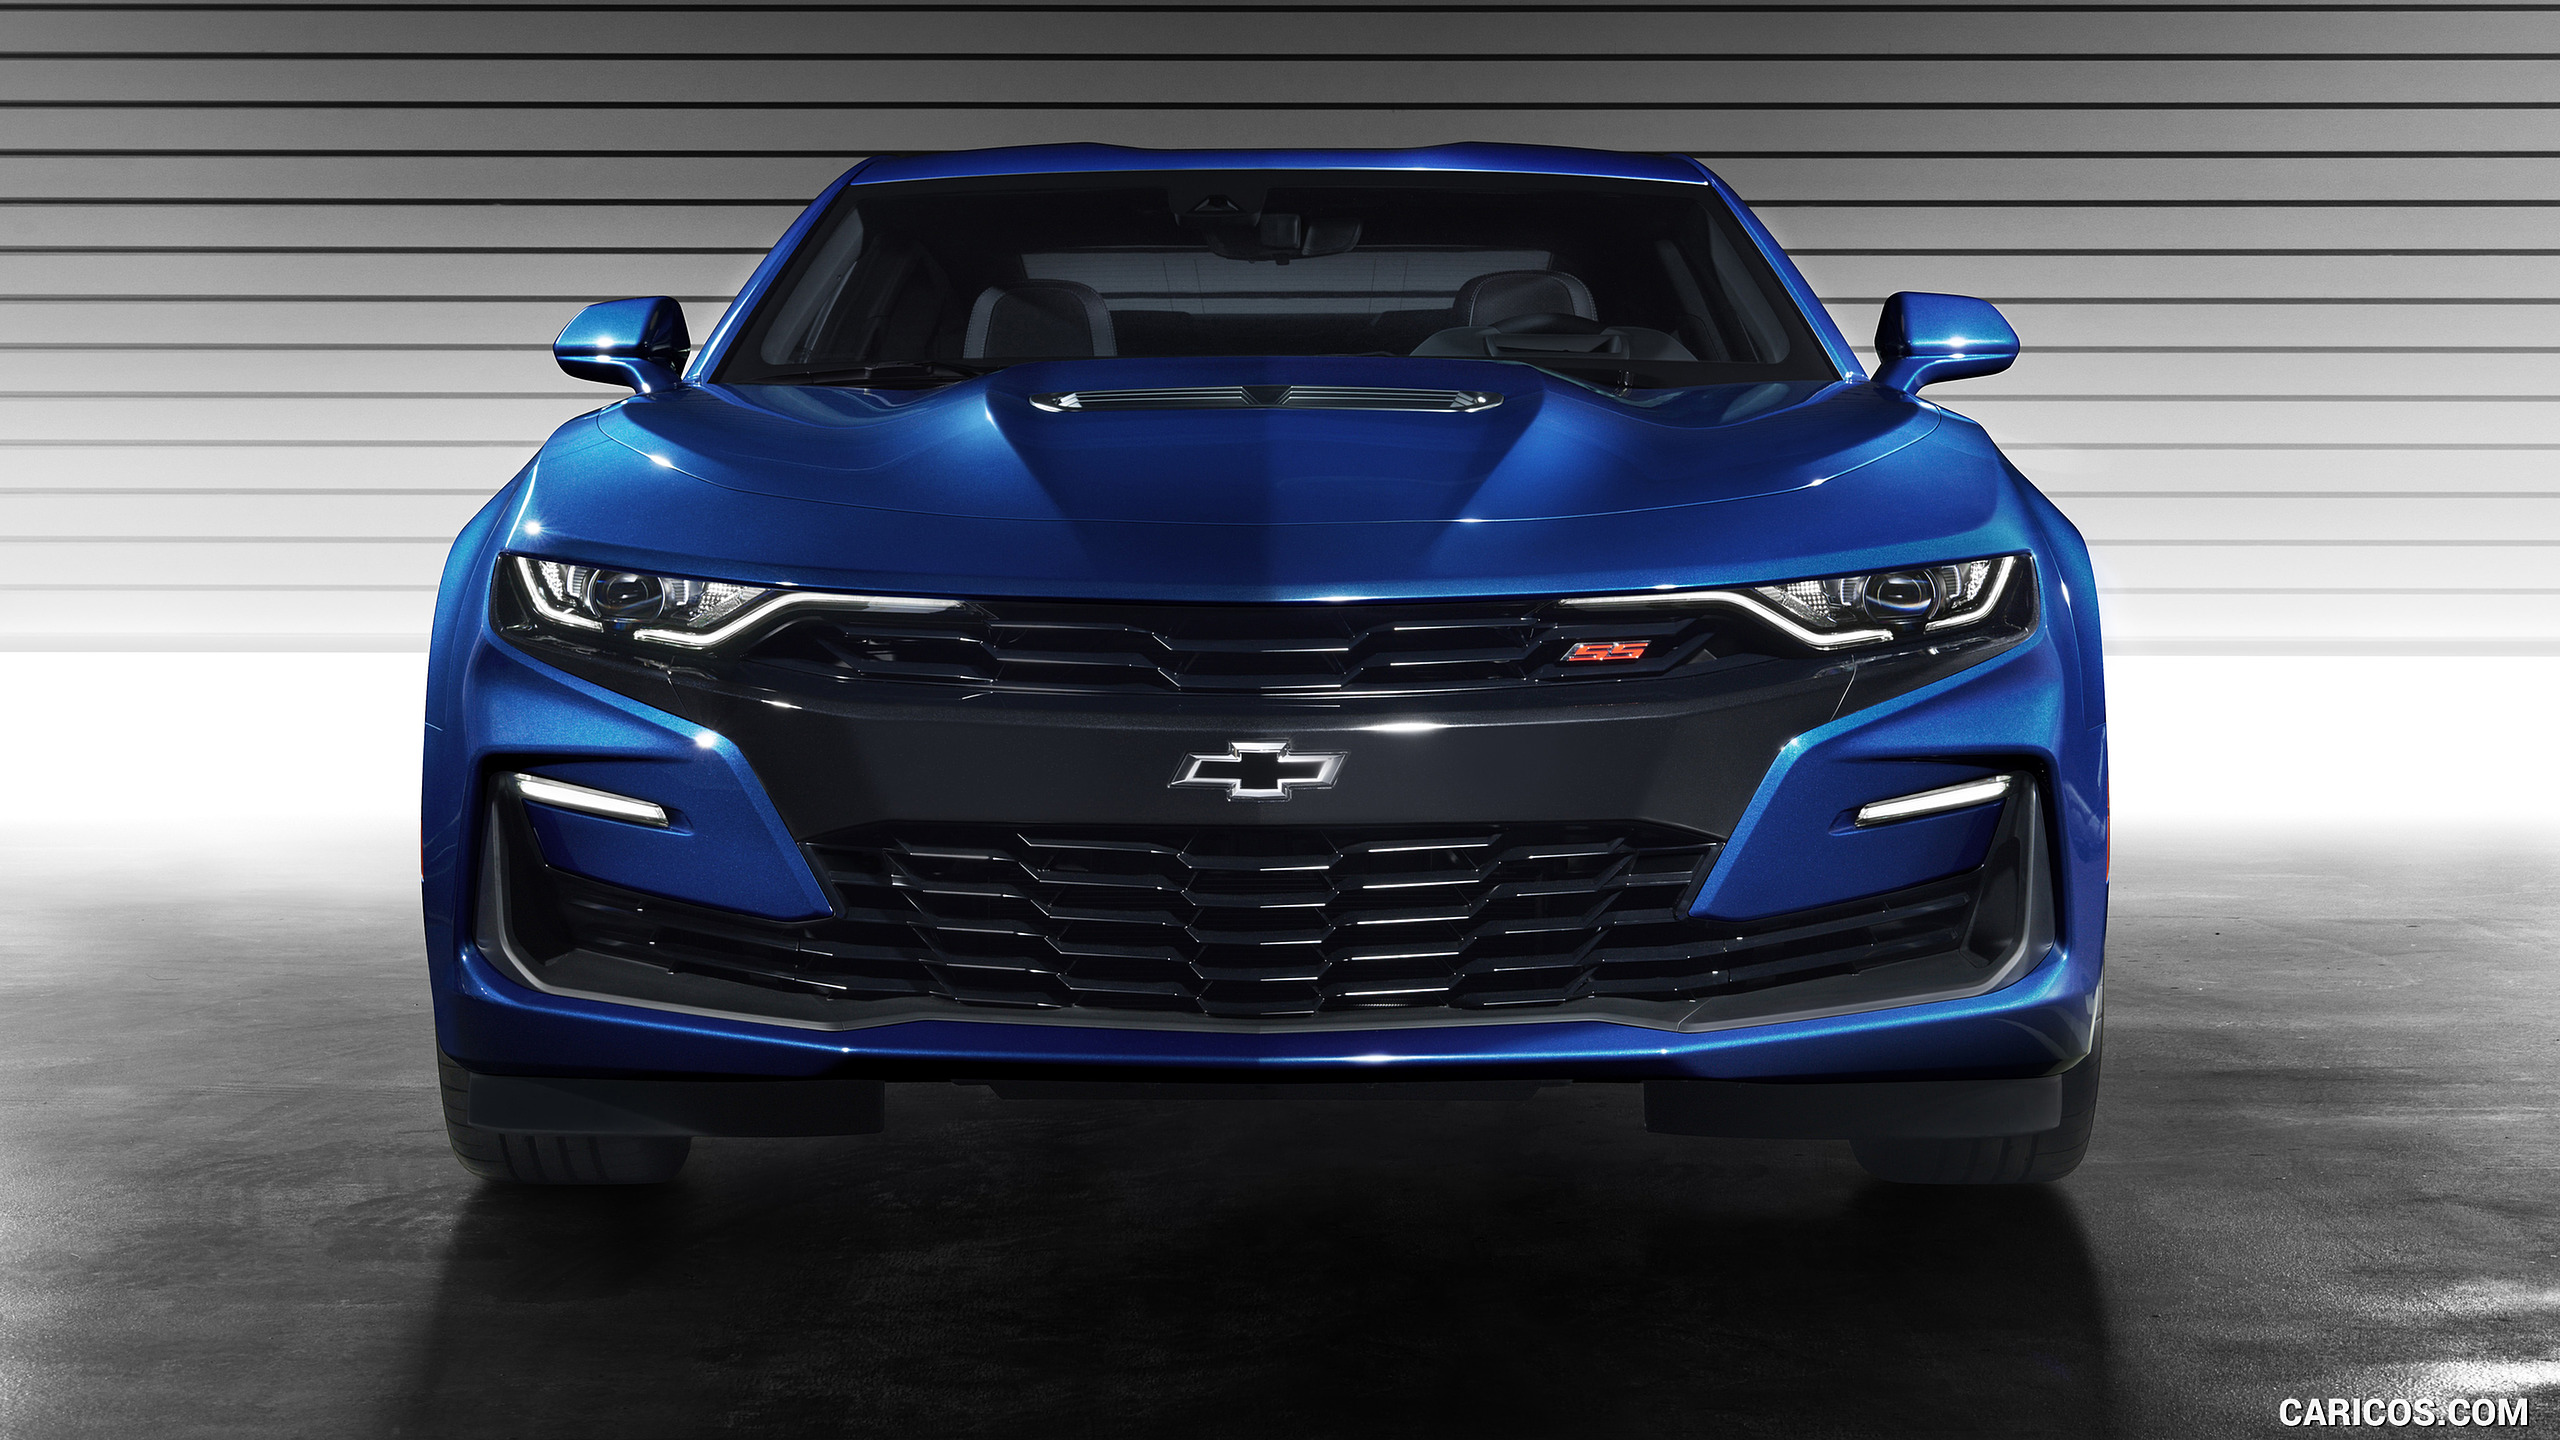 30 2019 Chevrolet Camaro Wallpapers On Wallpapersafari